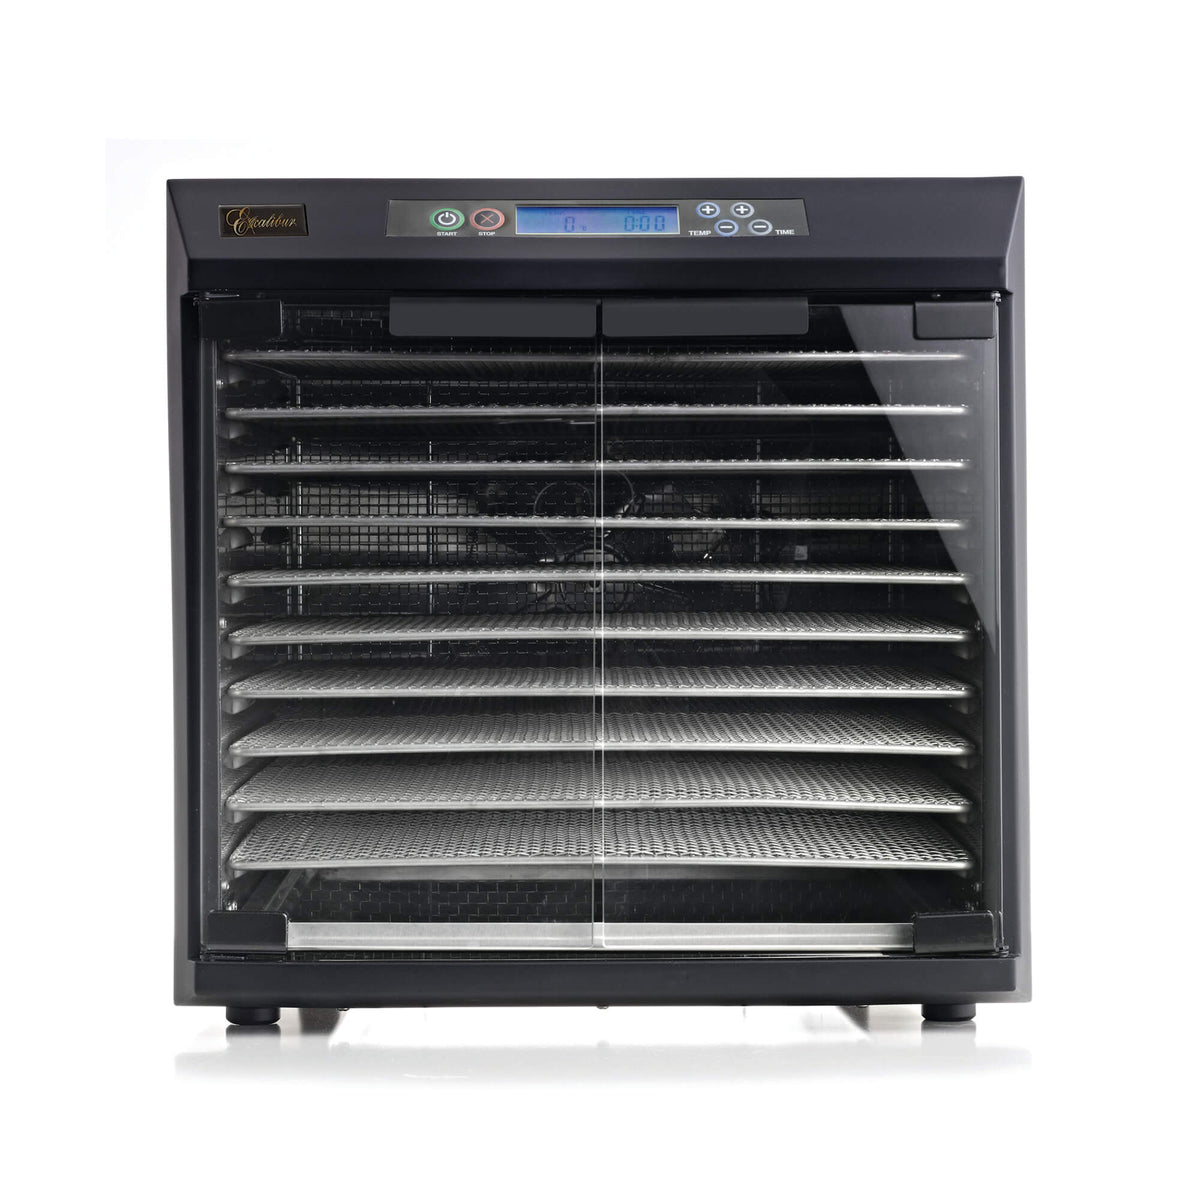 Excalibur EXC10EL 10 tray stainless steel digital dehydrator front view with glass armoured doors closed and trays in.